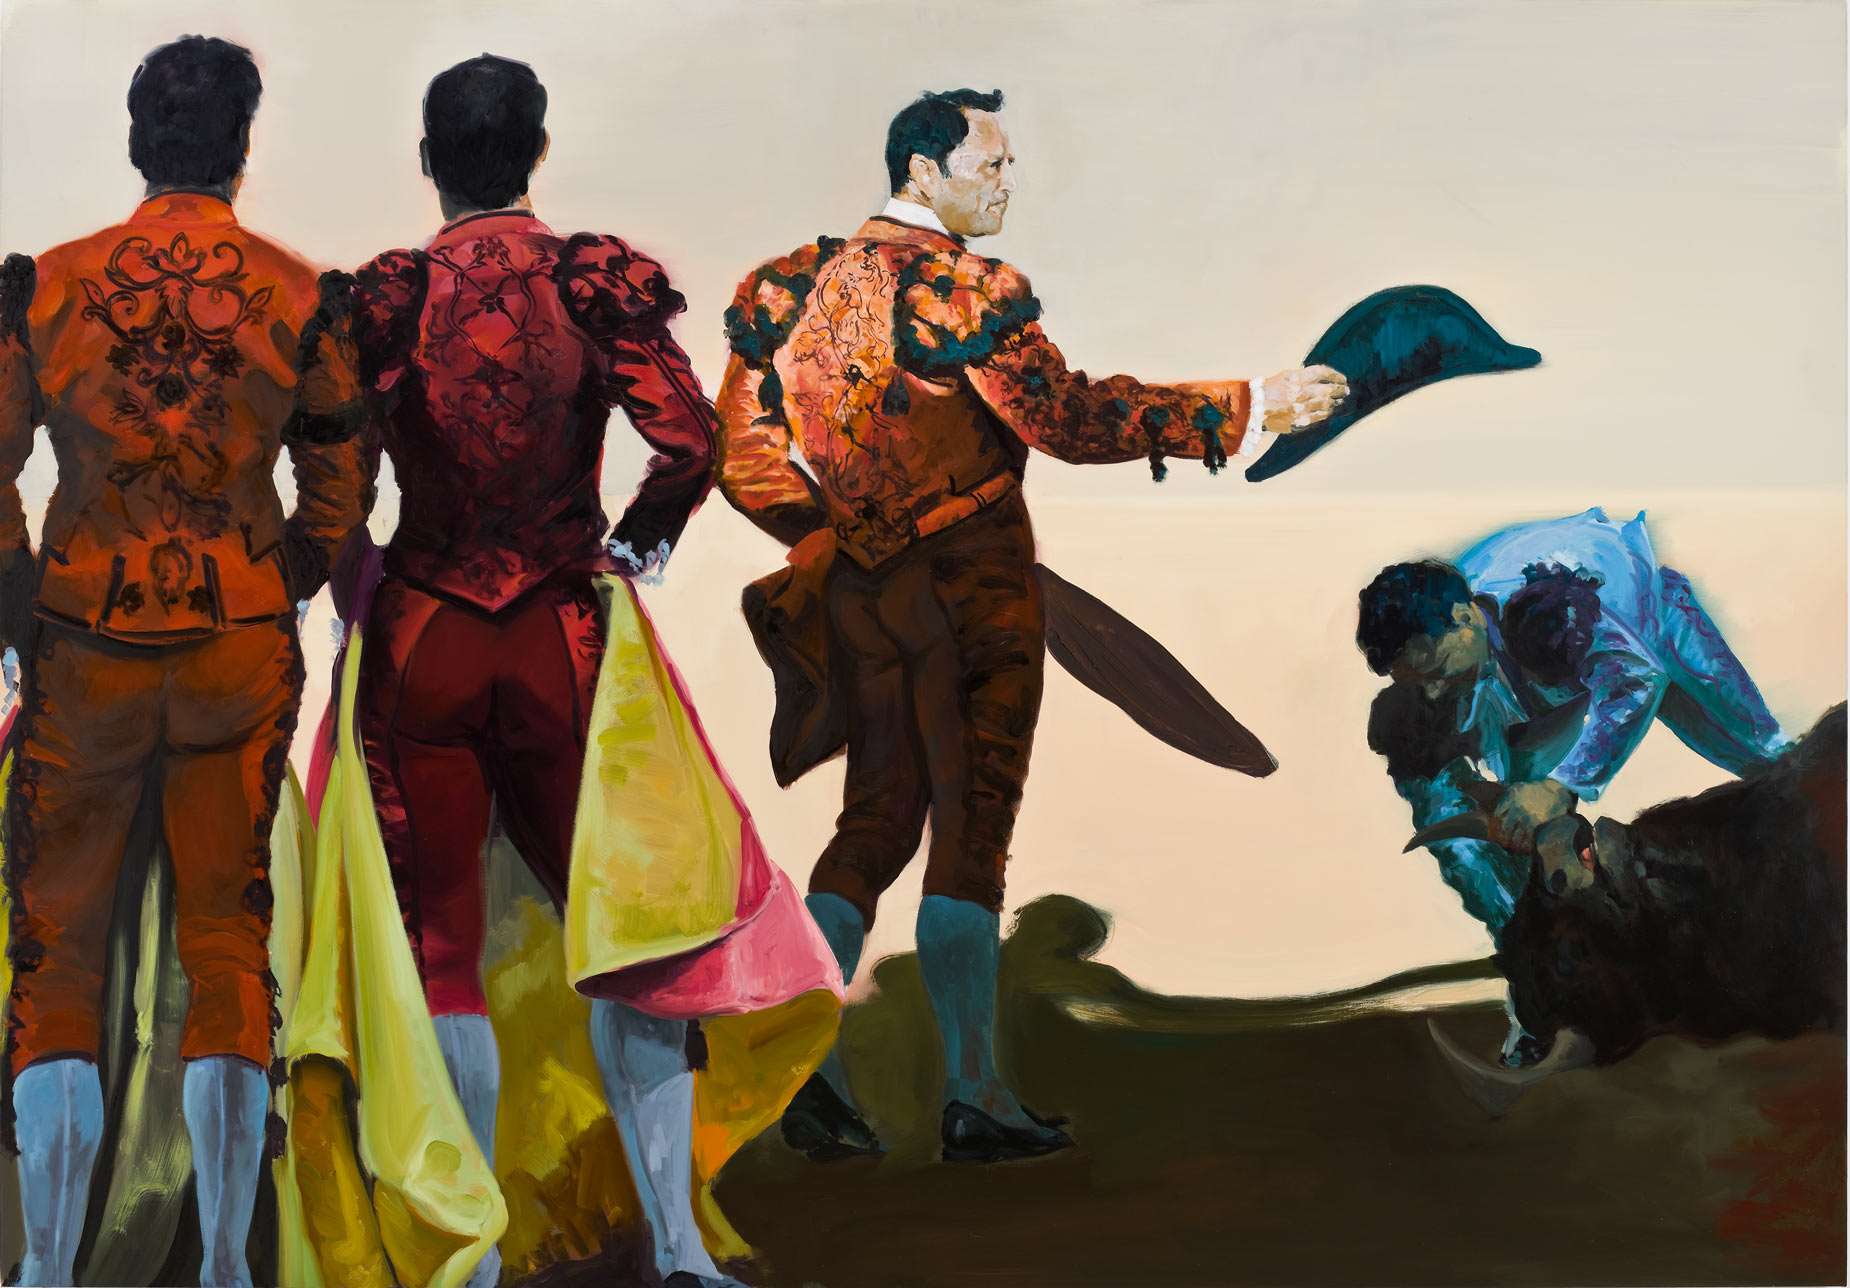 Corrida in Ronda #6, 2008. Oil on Linen. 84 x 120 in. (213 x 305 cm.)